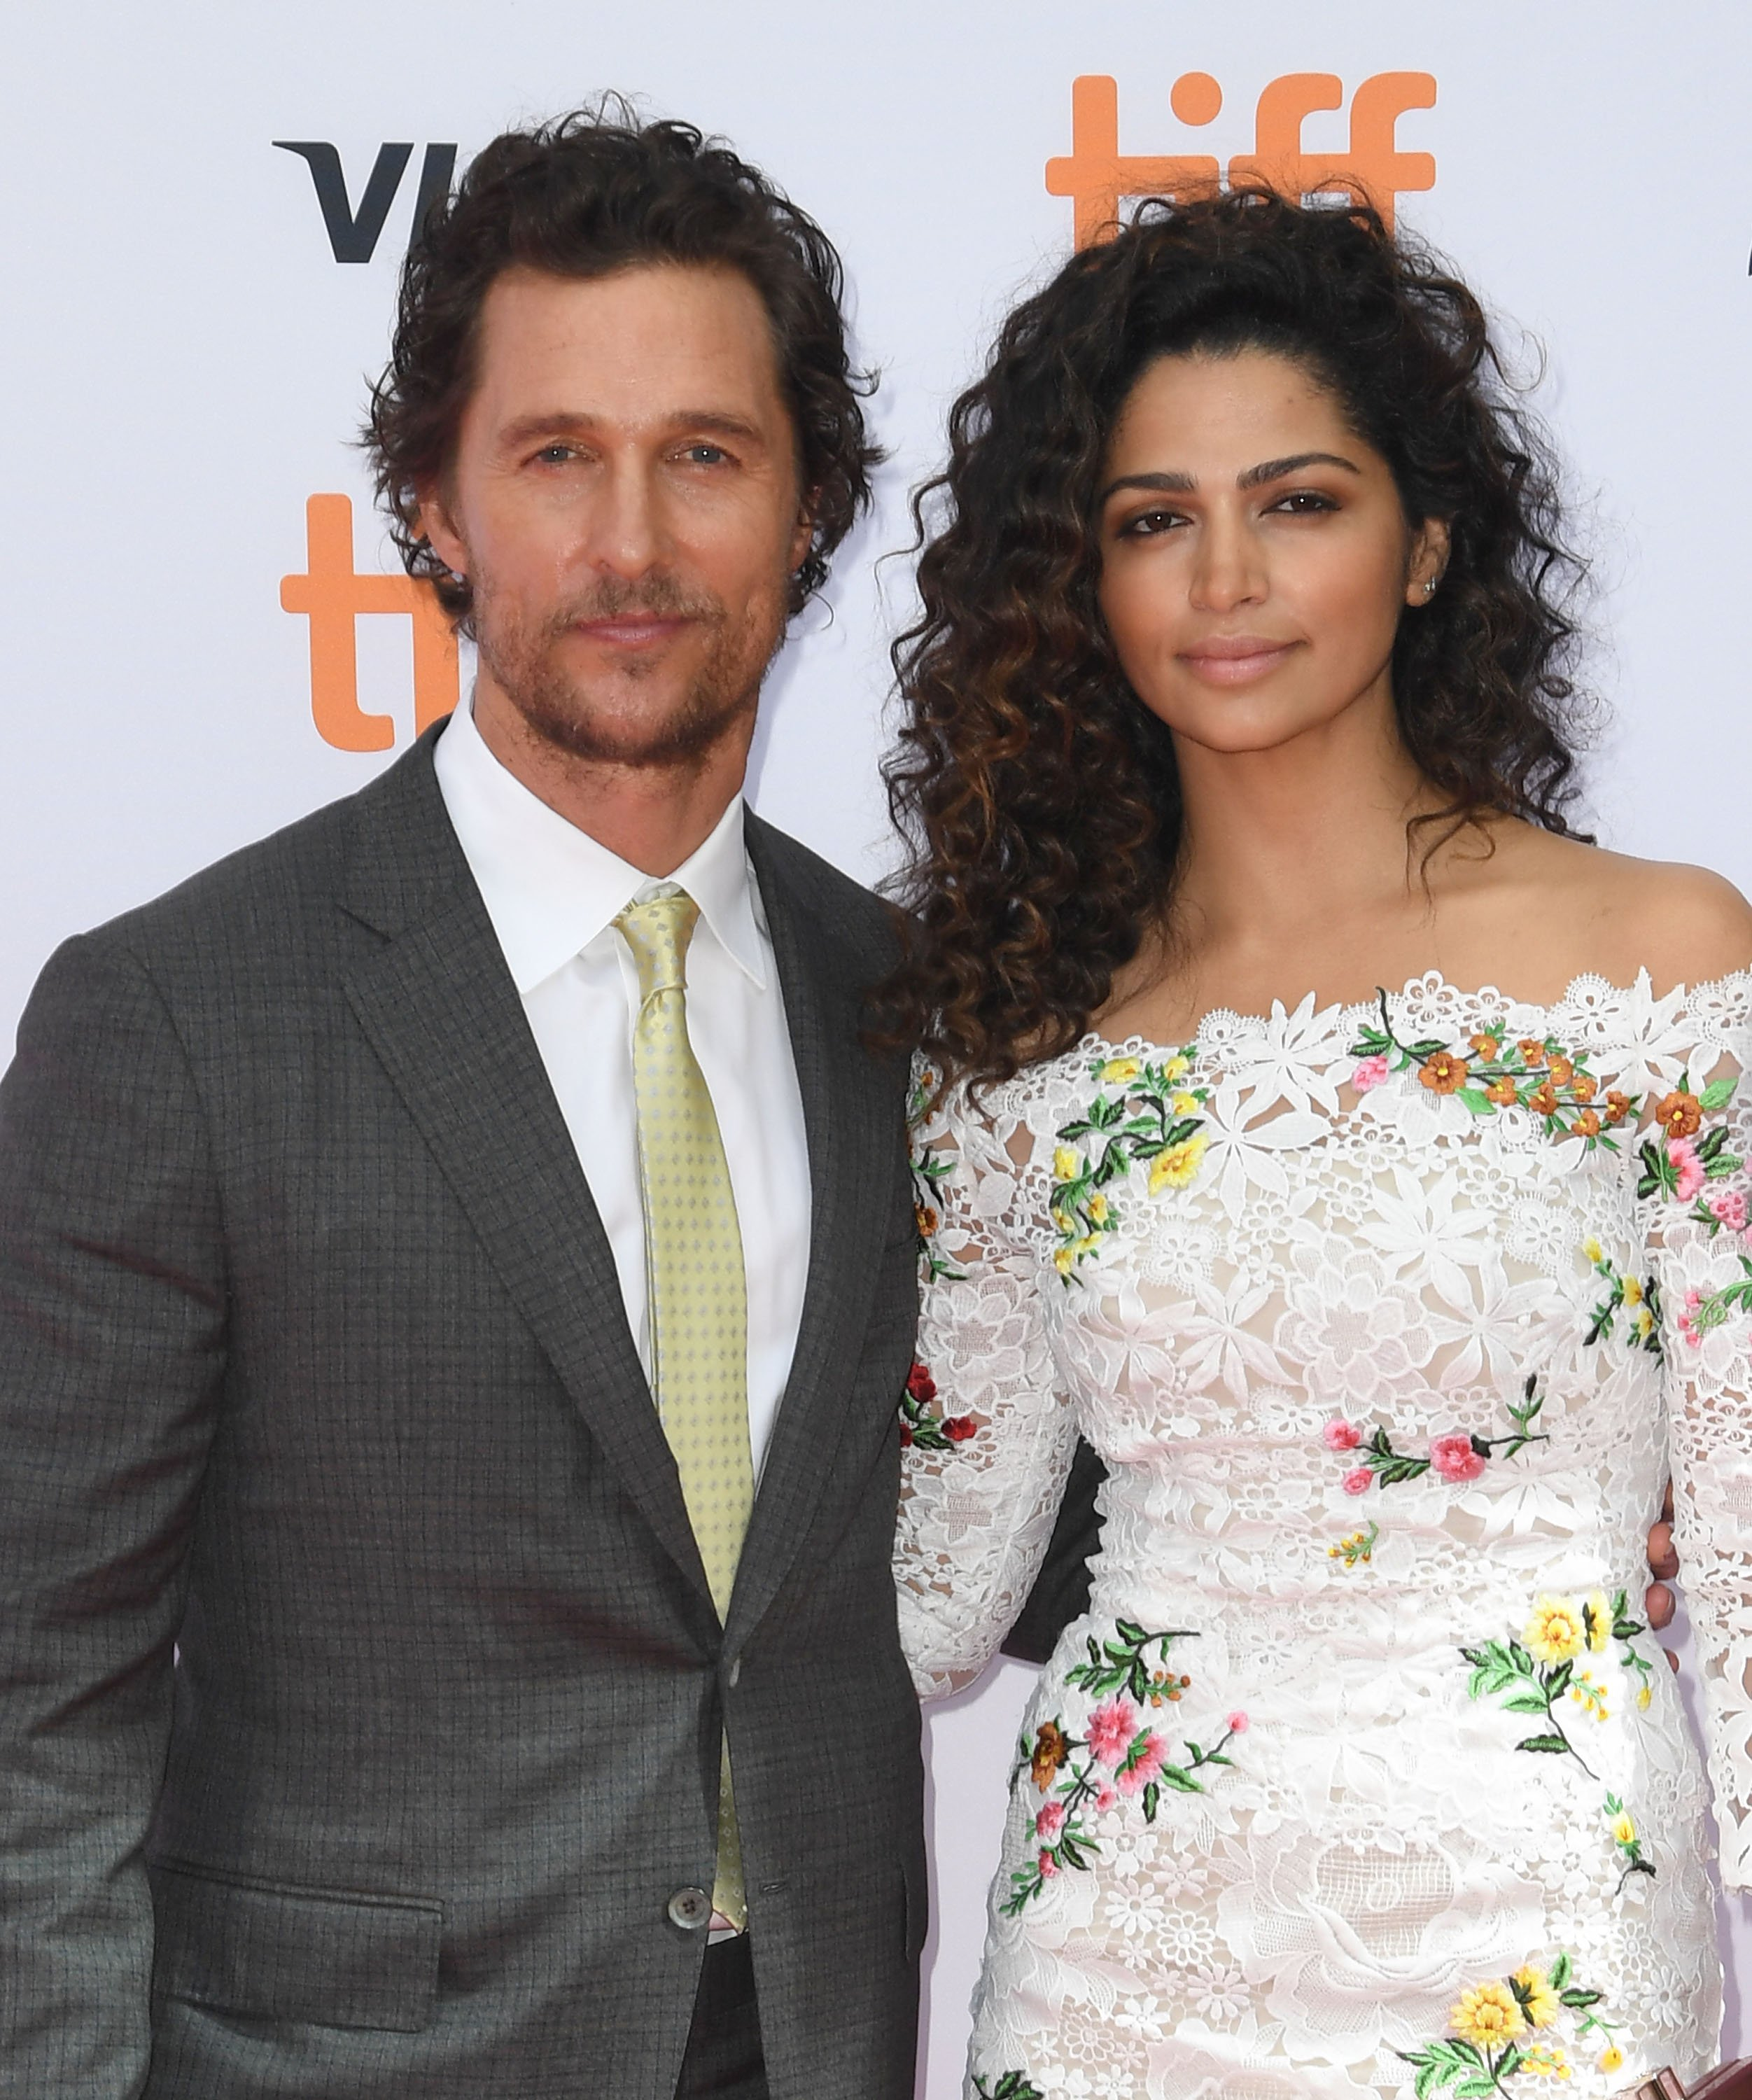 """Matthew McConaughey and wife Camila Alves at the """"Sing"""" premiere in Toronto, September, 2016. 